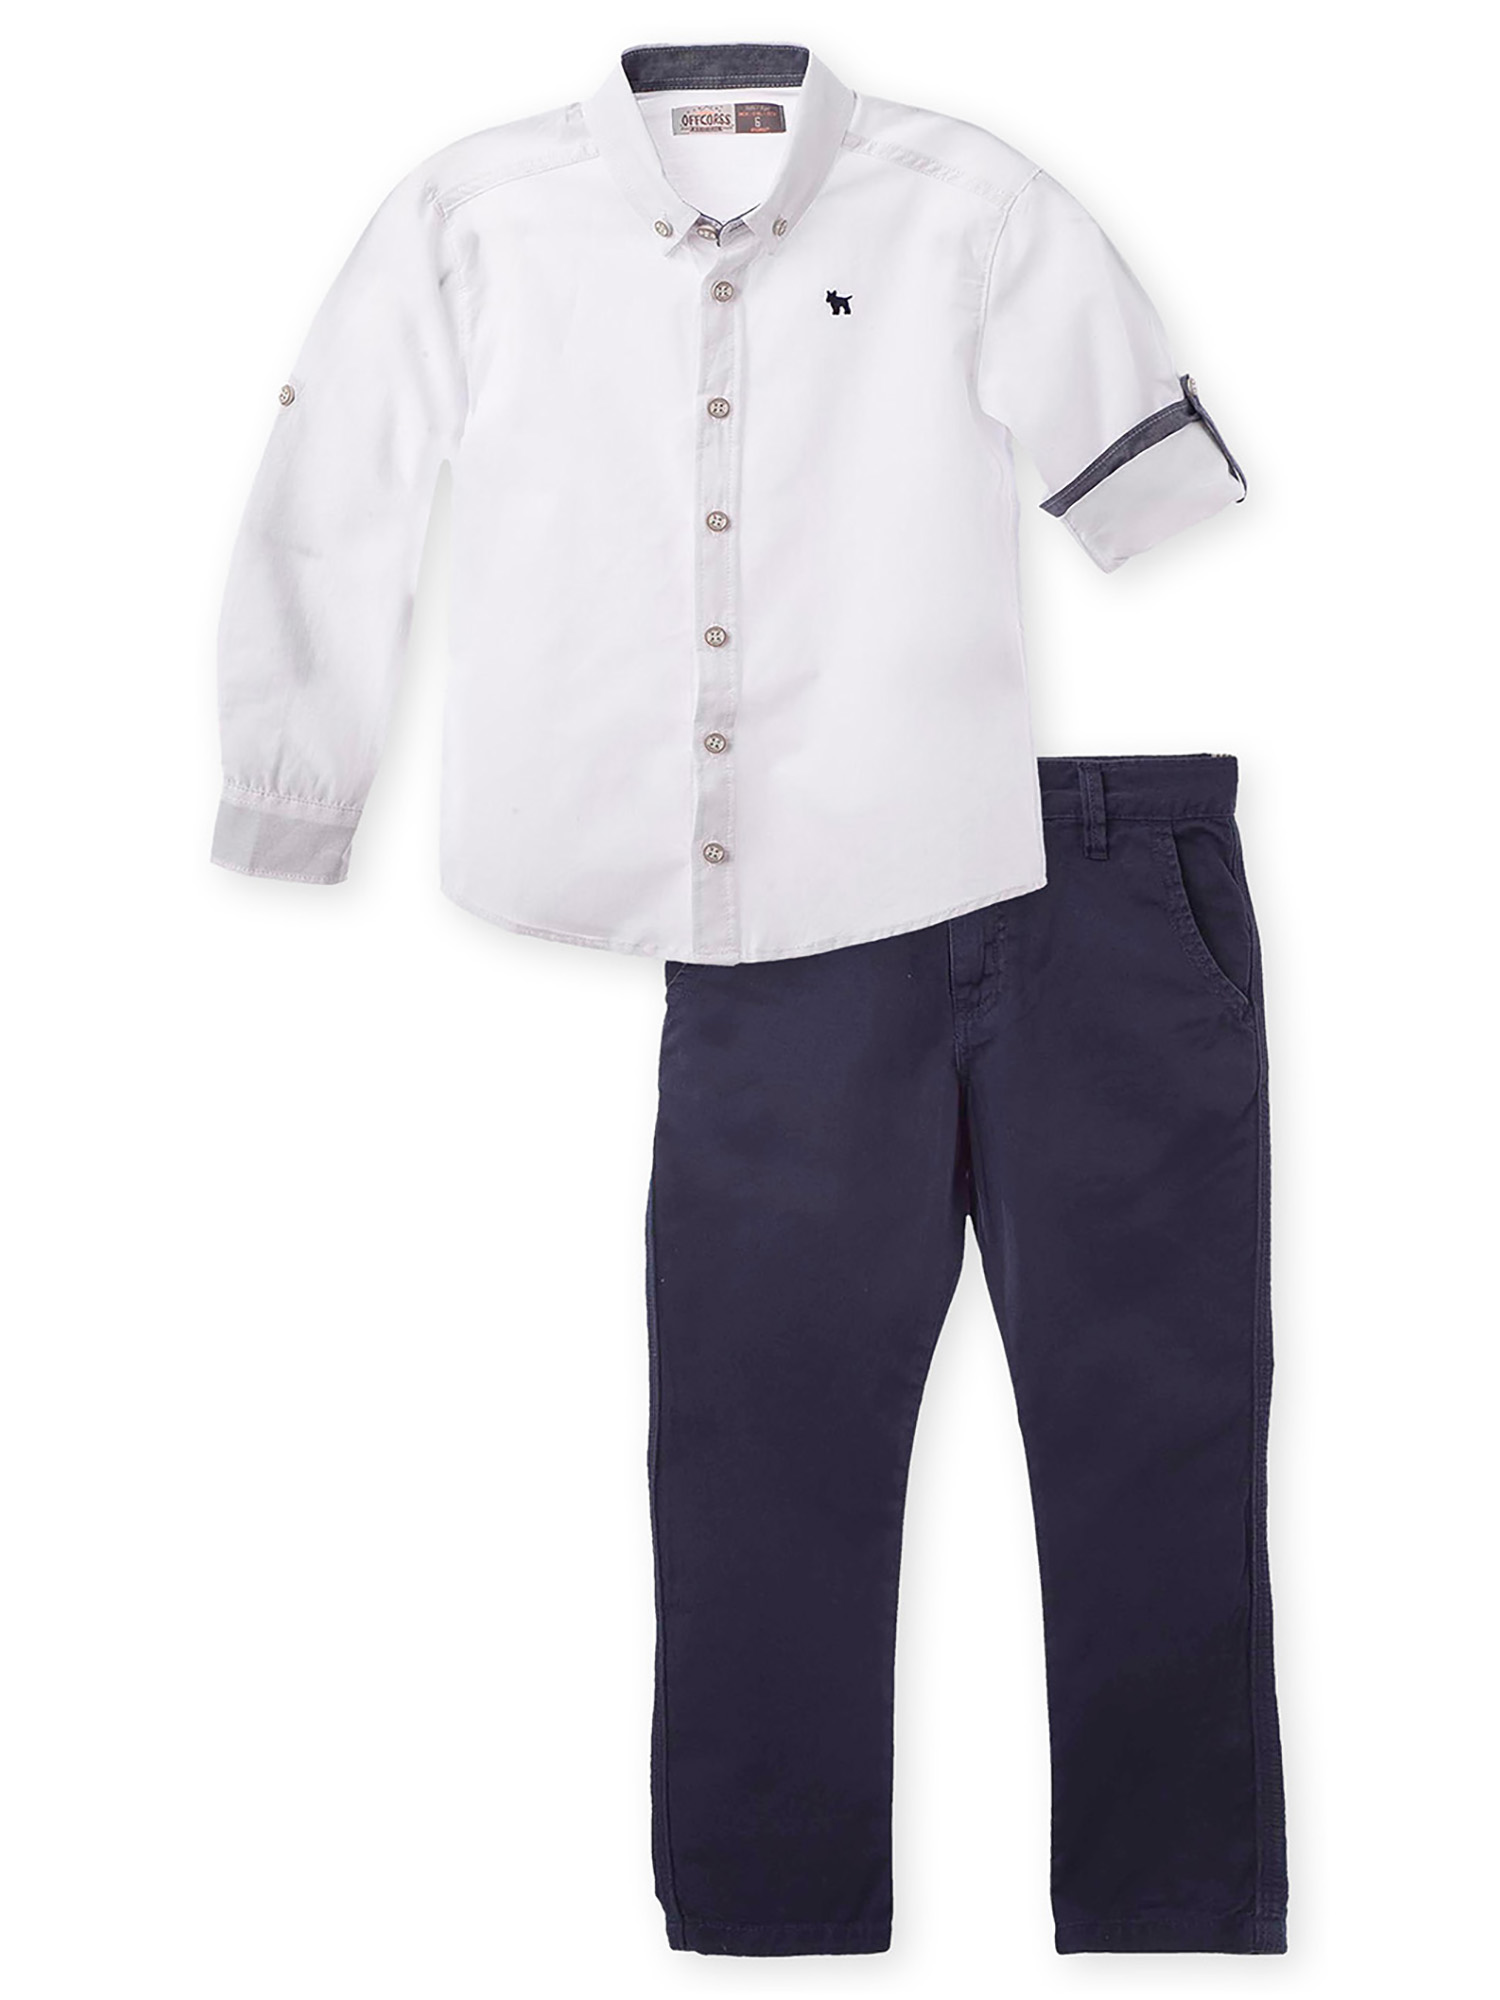 OFFCORSS Big Boy Pants and Long Sleeve Shirt Set